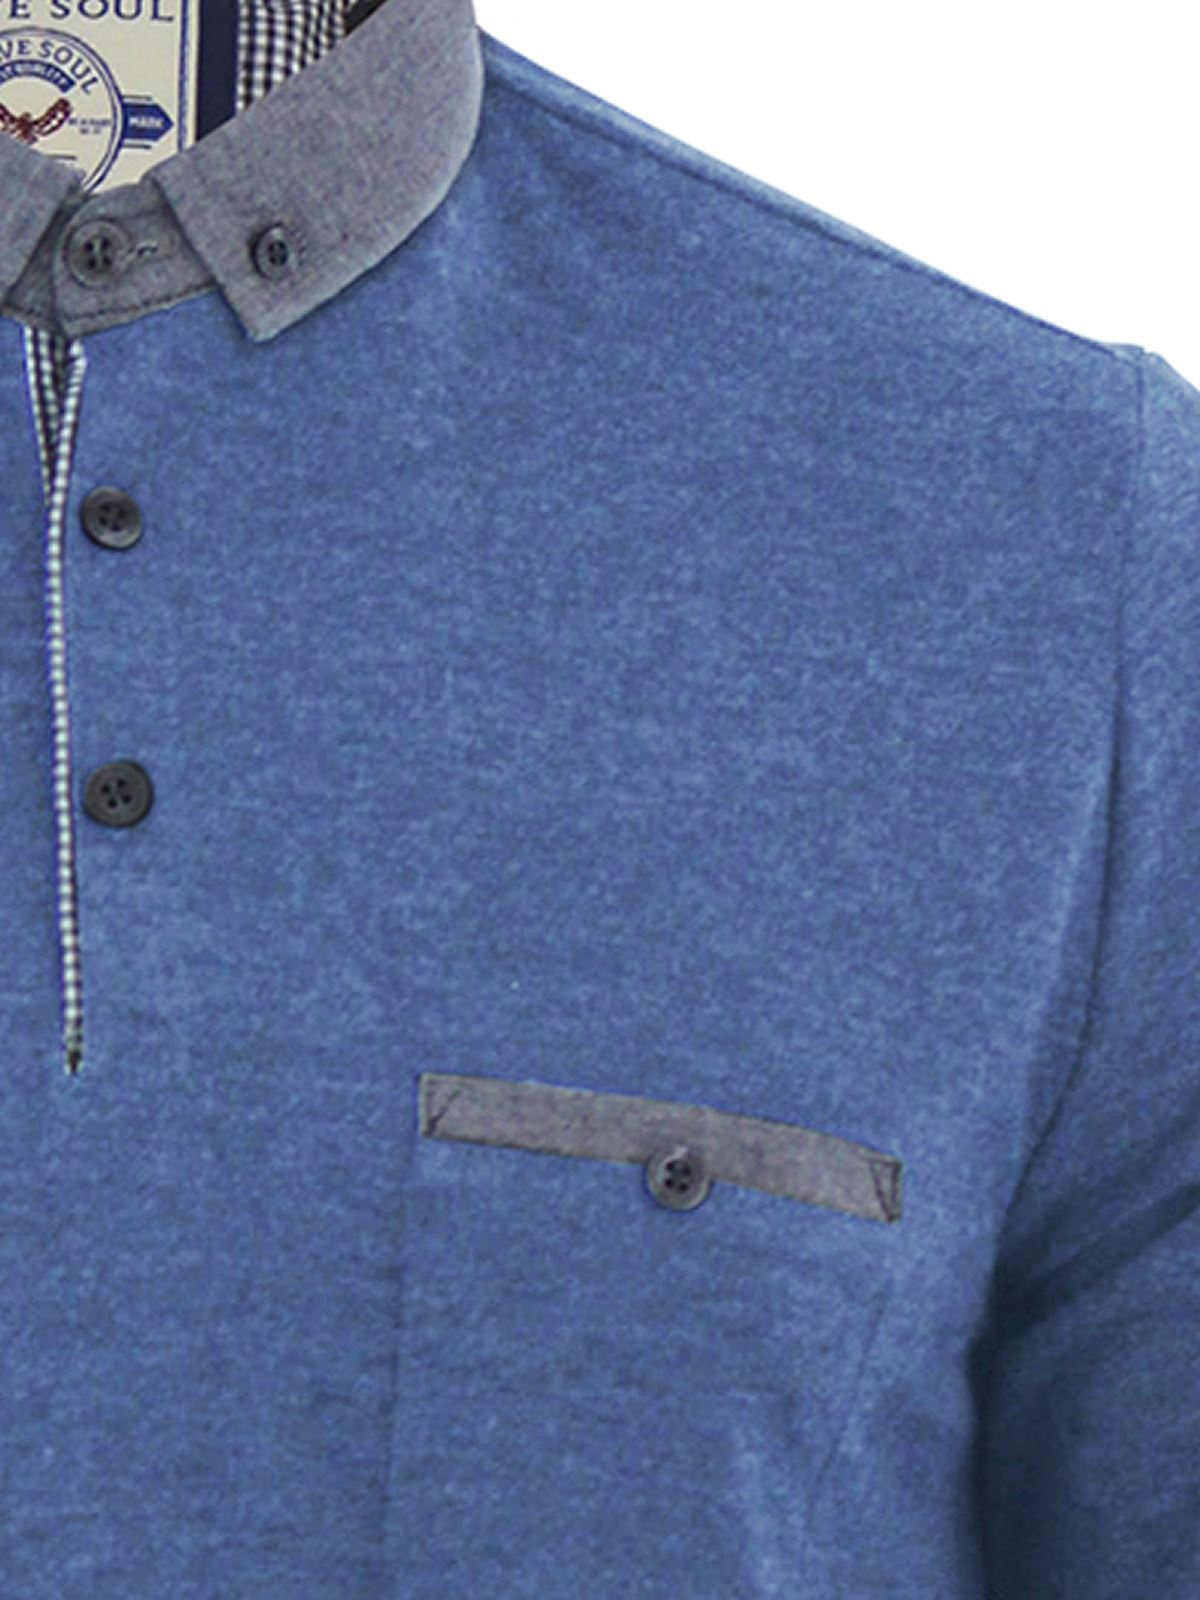 Mens-Polo-Shirt-Brave-Soul-Long-Sleeve-Collared-Top-In-Various-Styles thumbnail 49